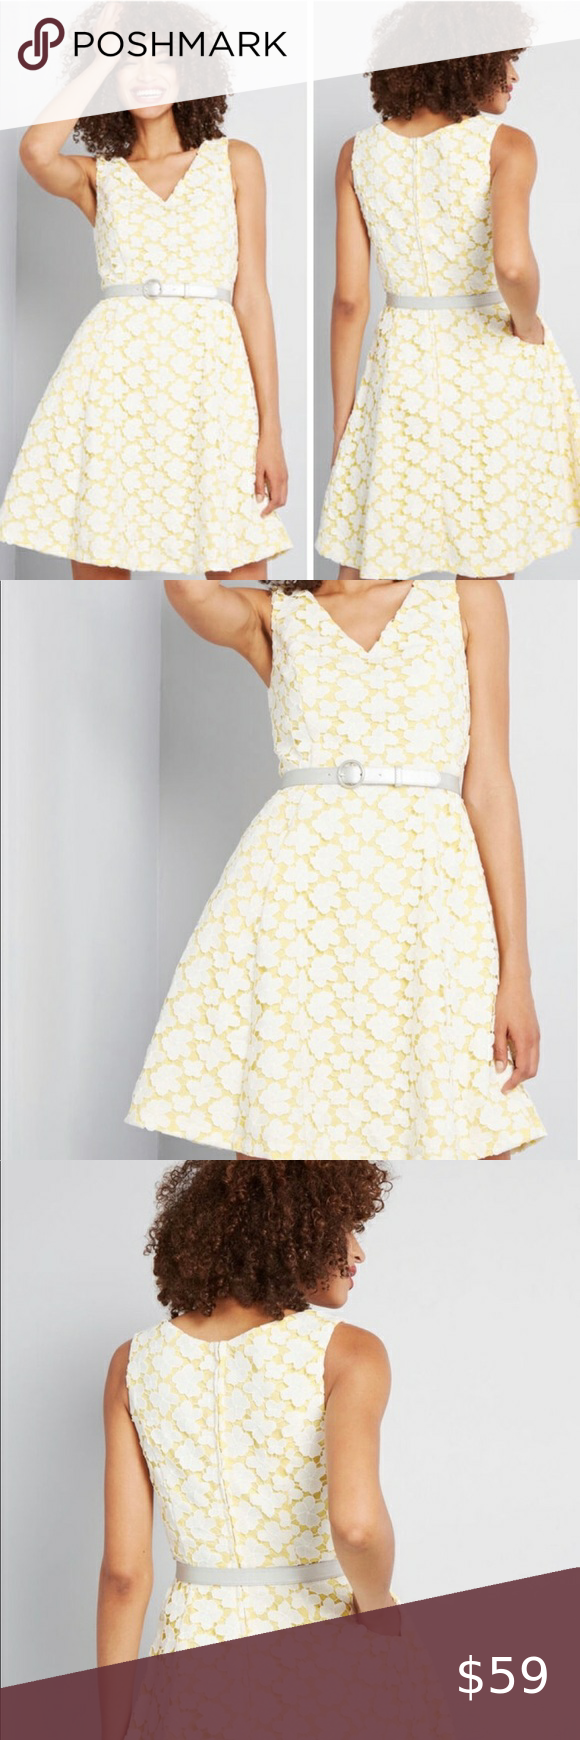 Modcloth Yellow Lace Dress Yellow Lace Dresses Fit And Flare Dress Flare Dress [ 1740 x 580 Pixel ]